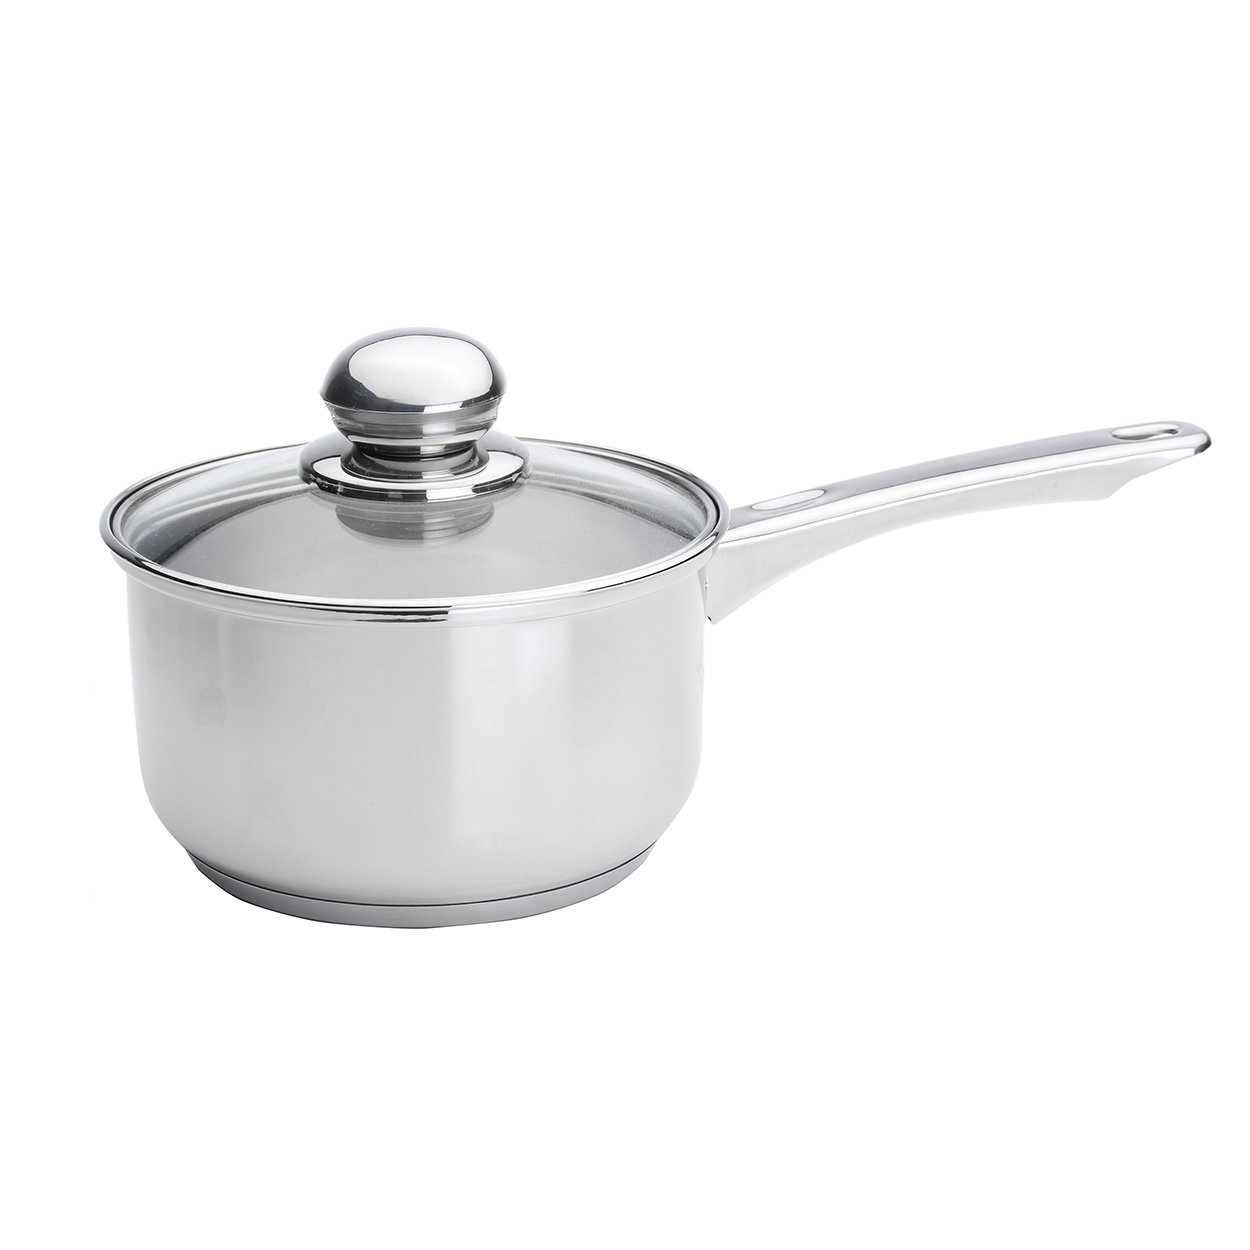 Kinetic Classicor Series Stainless-Steel 2-Quart Saucepan with Lid 29102